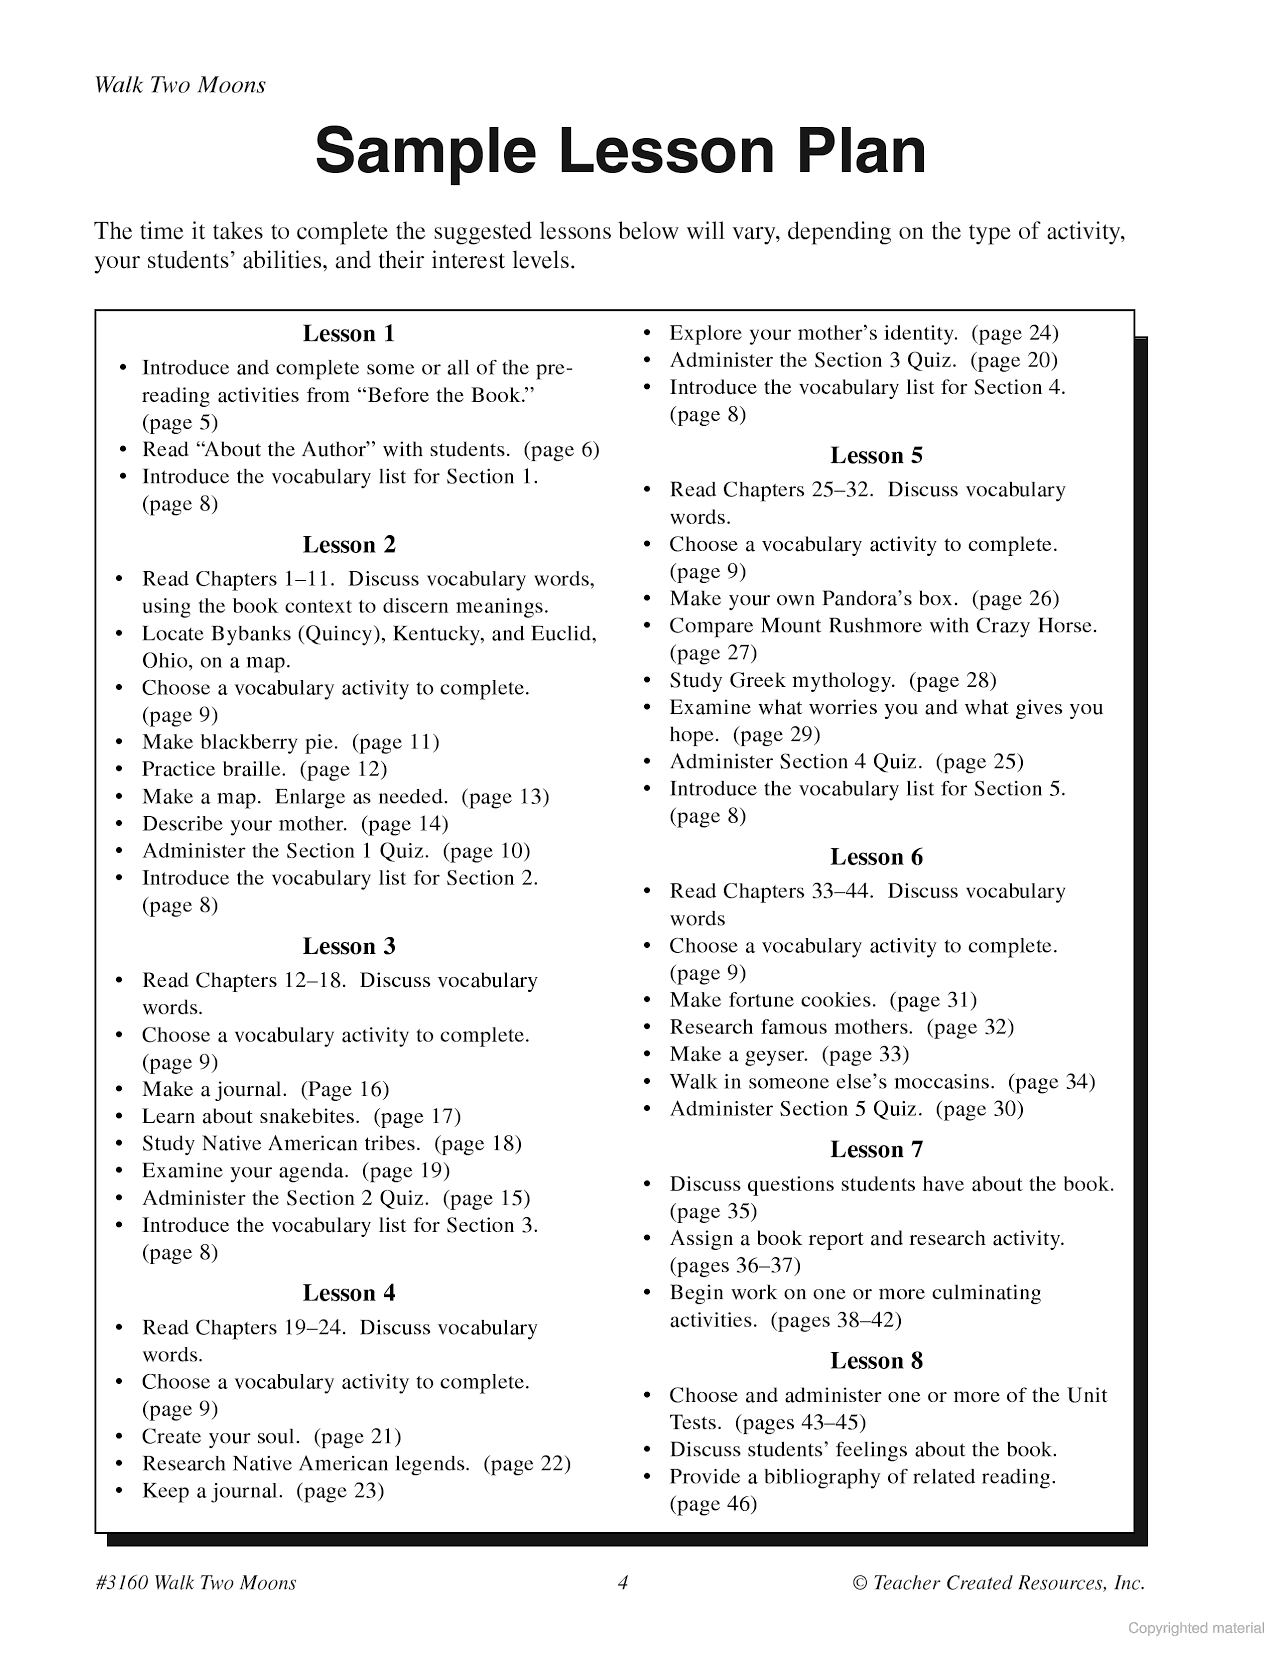 Worksheets Walk Two Moons Worksheets a guide for using walk two moons in the classroom 6th grade classroom